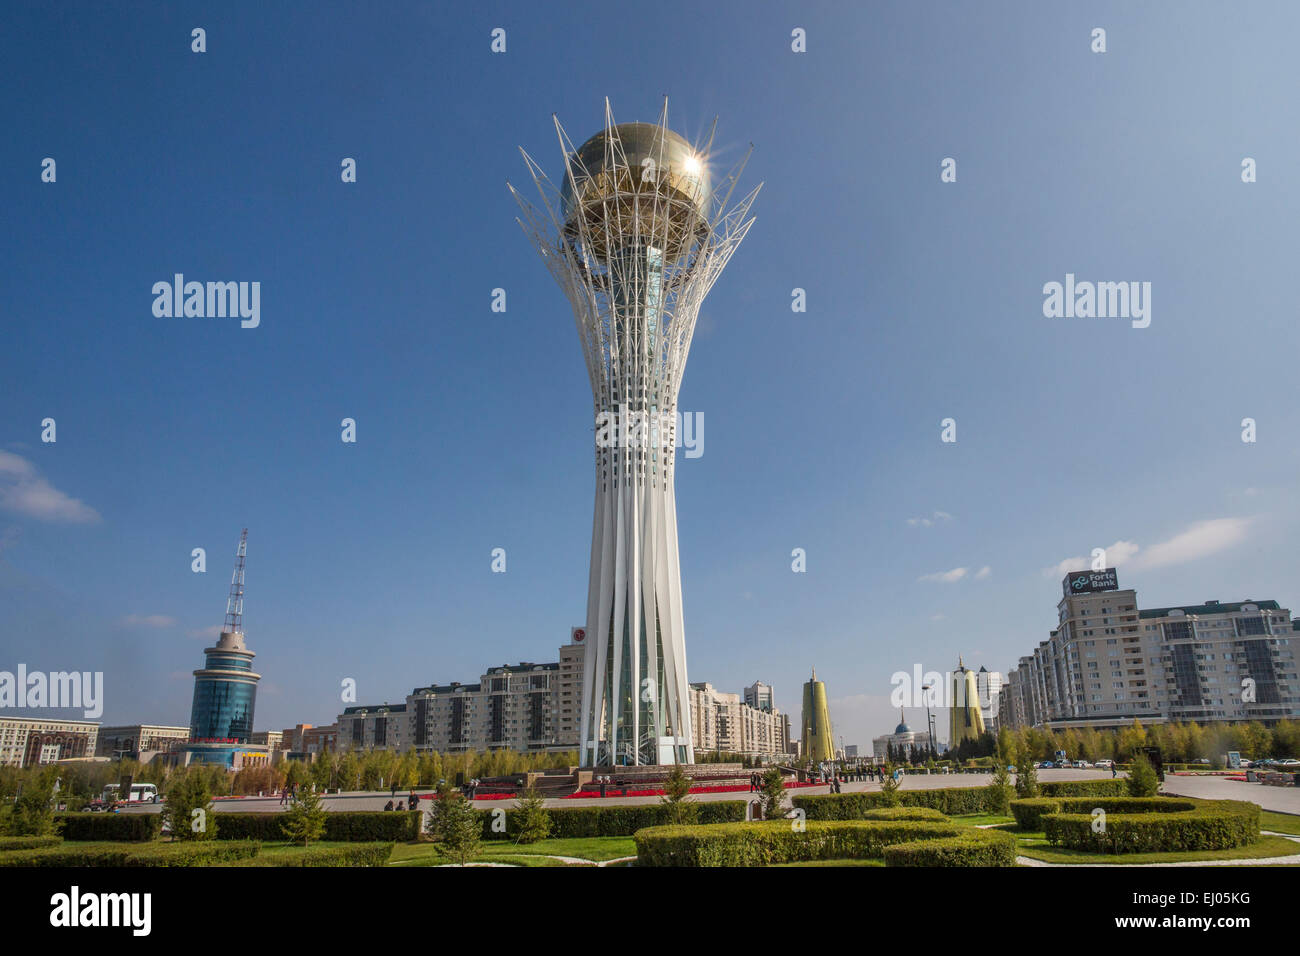 Astana, Avenue, Boulevard, City, Kazakhstan, Central Asia, Monument, New City, Nurzhol, architecture, colourful, - Stock Image